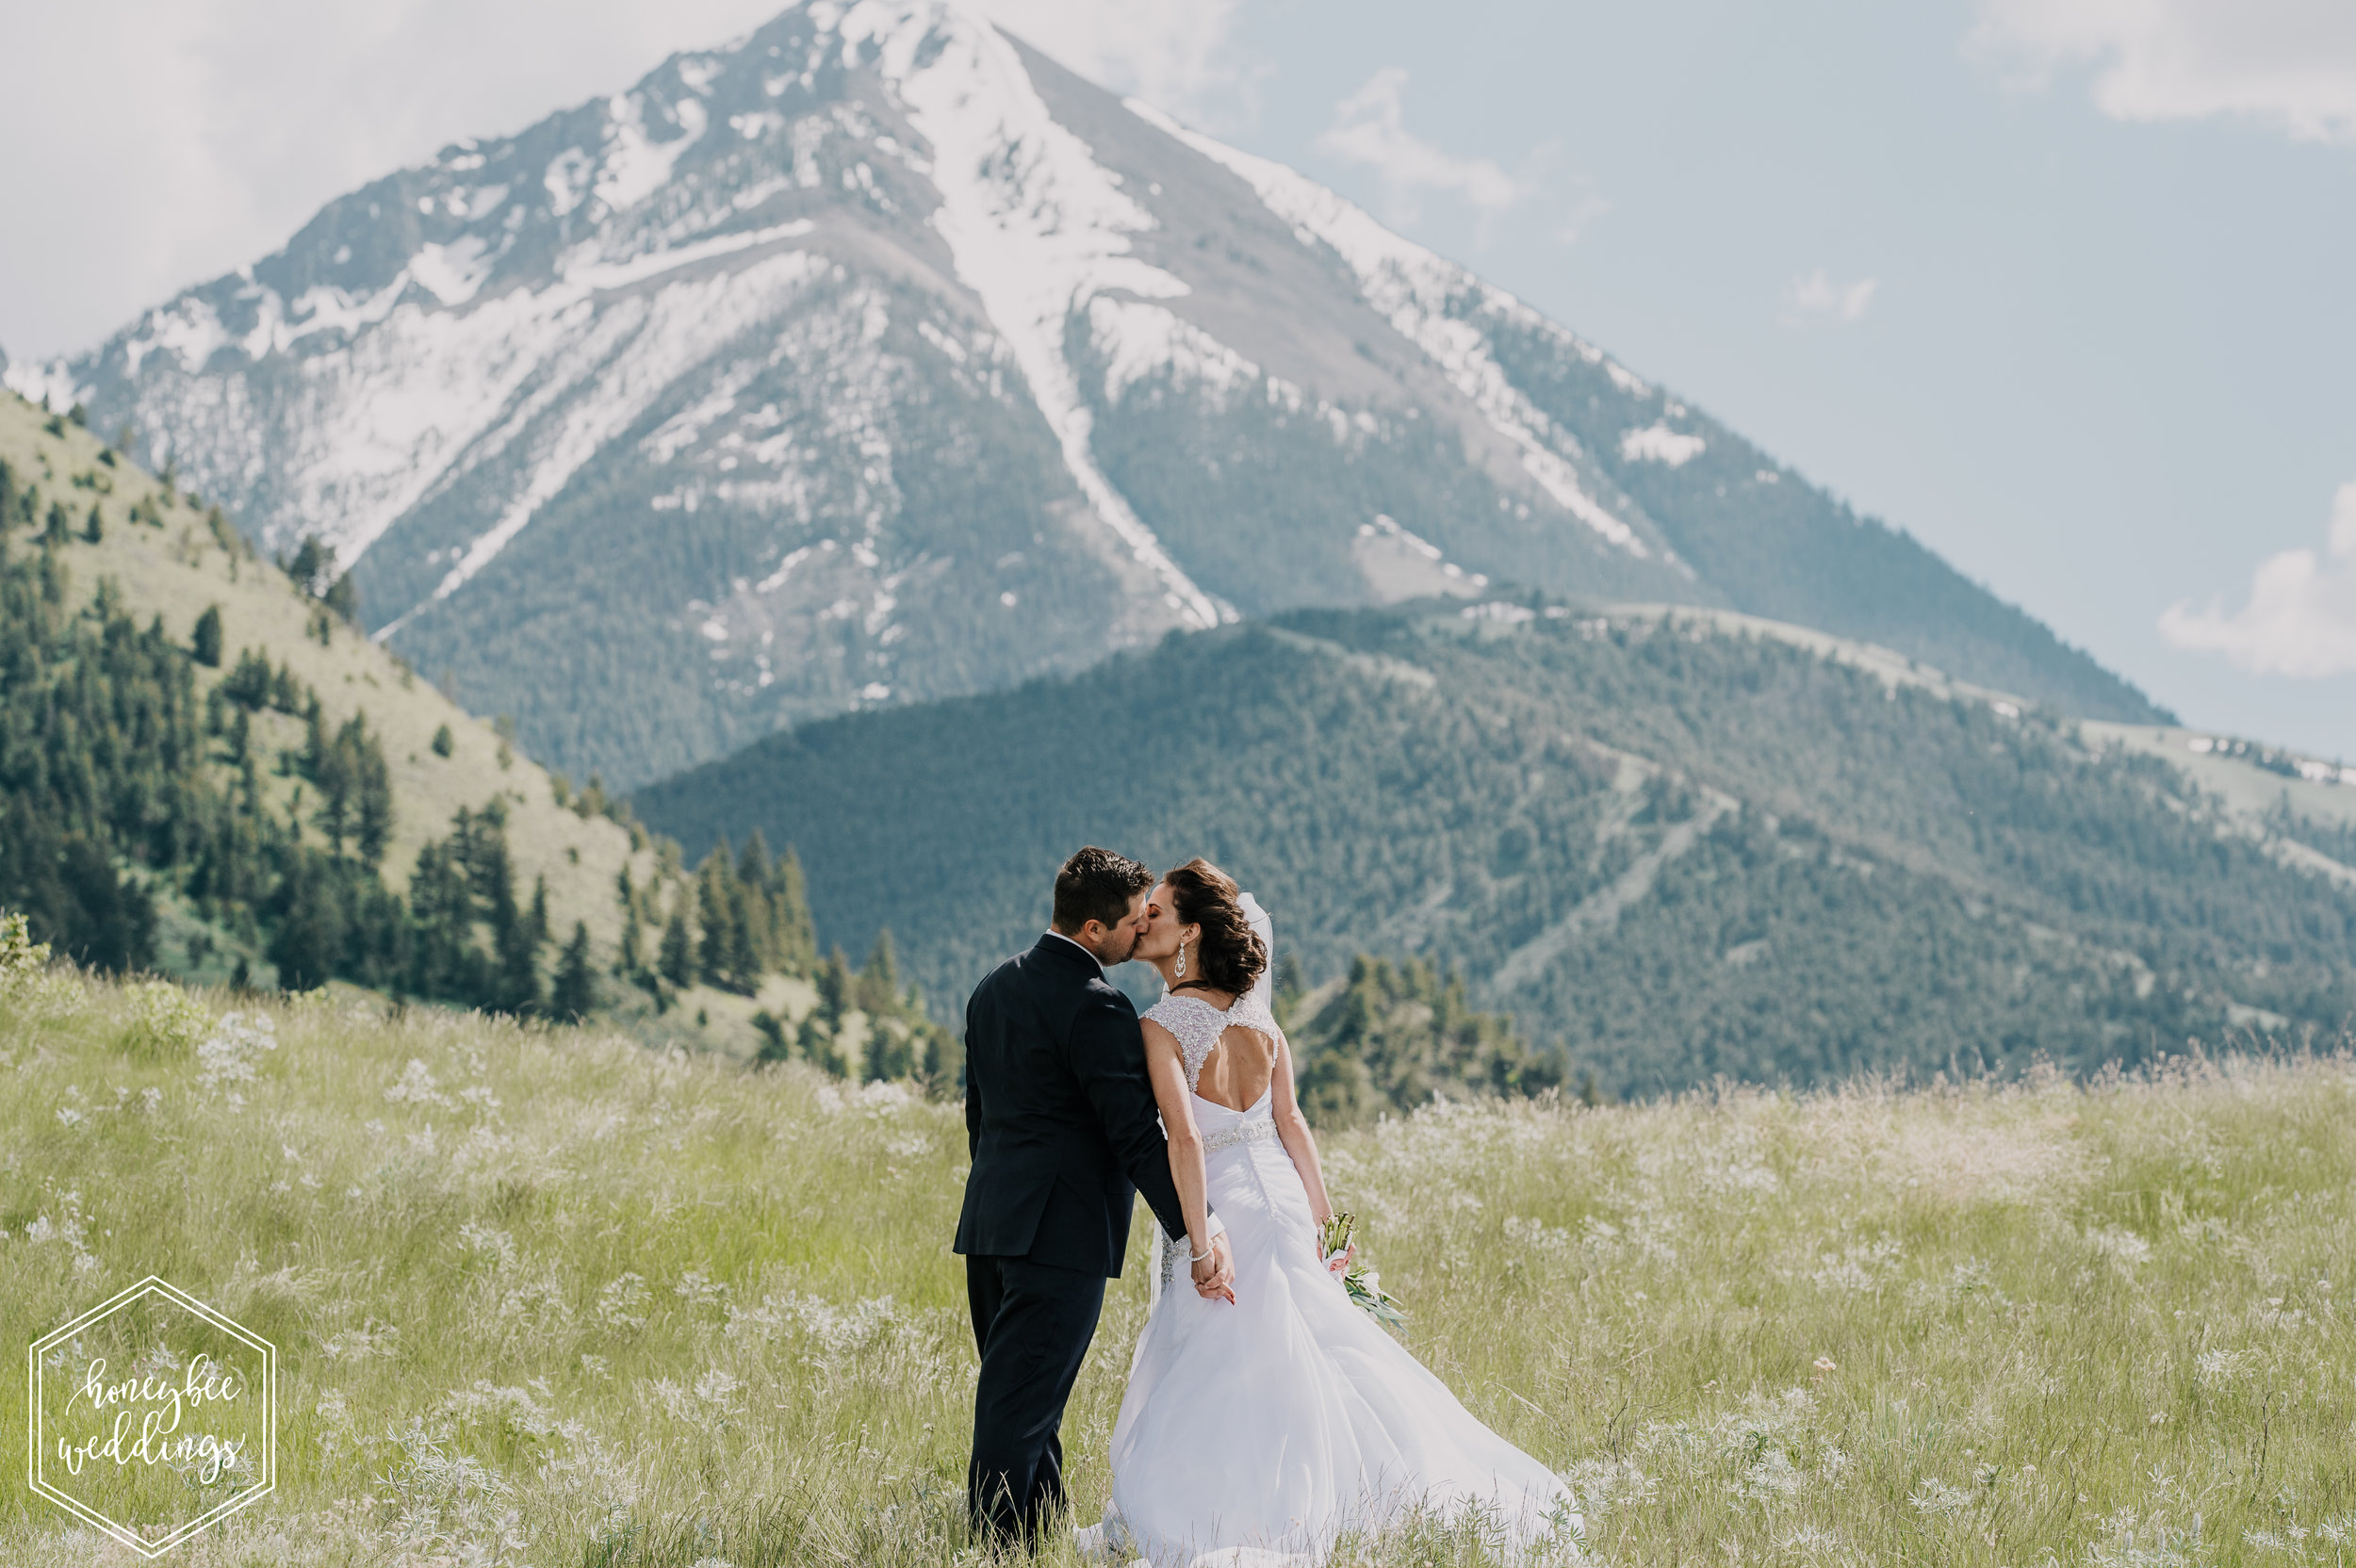 85 Chico Hotsprings Wedding_Bowdino 2018-3182.jpg